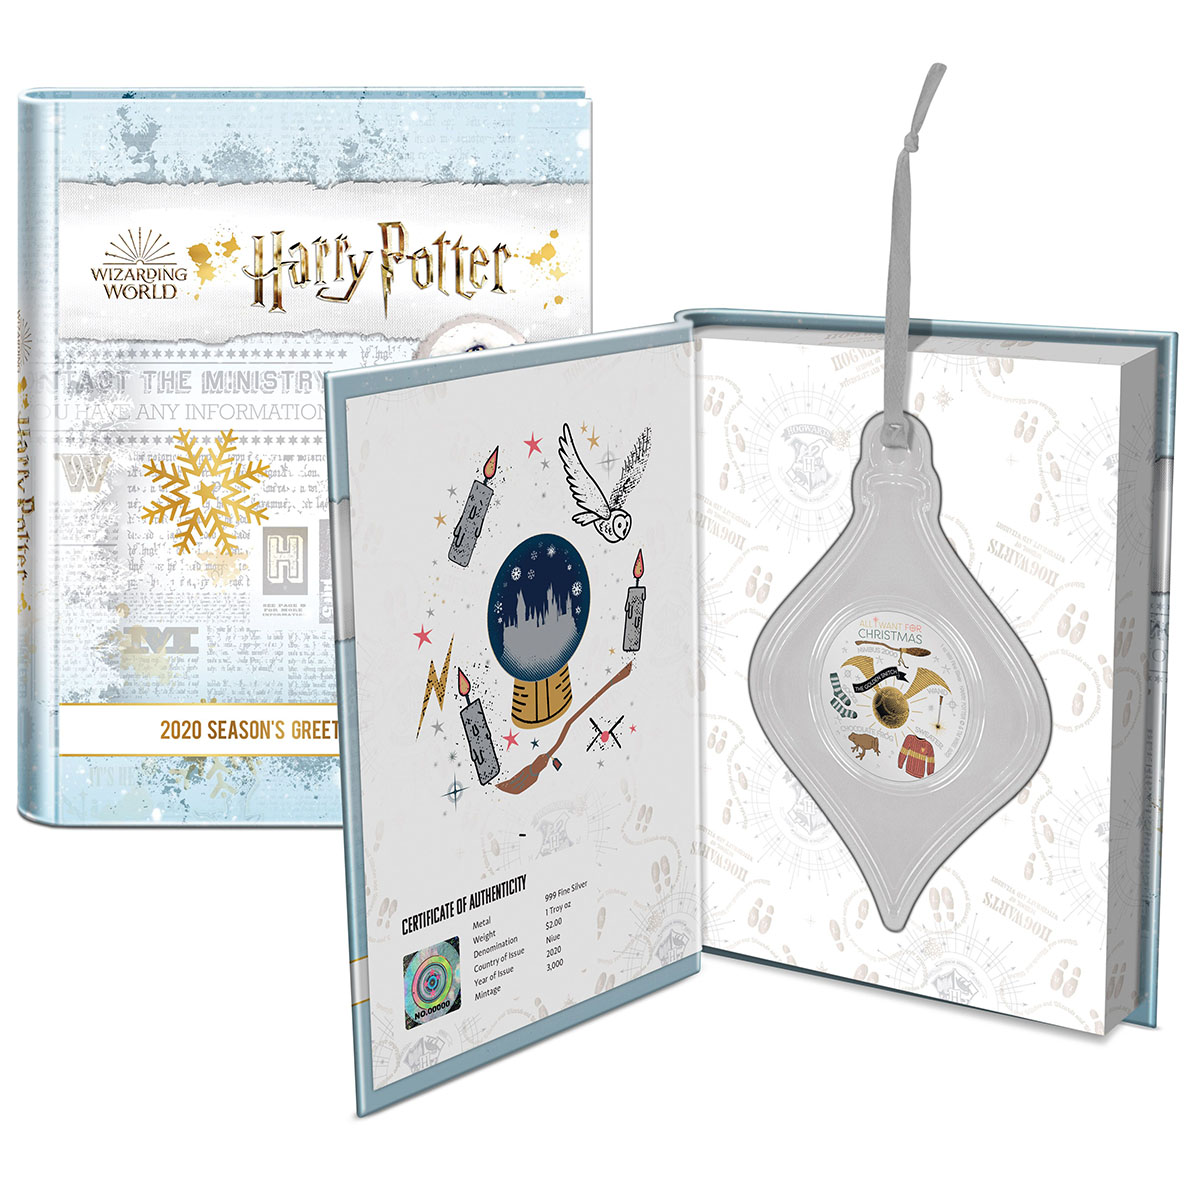 HARRY POTTER™ Season's Greetings 2020 1oz Silver Coin